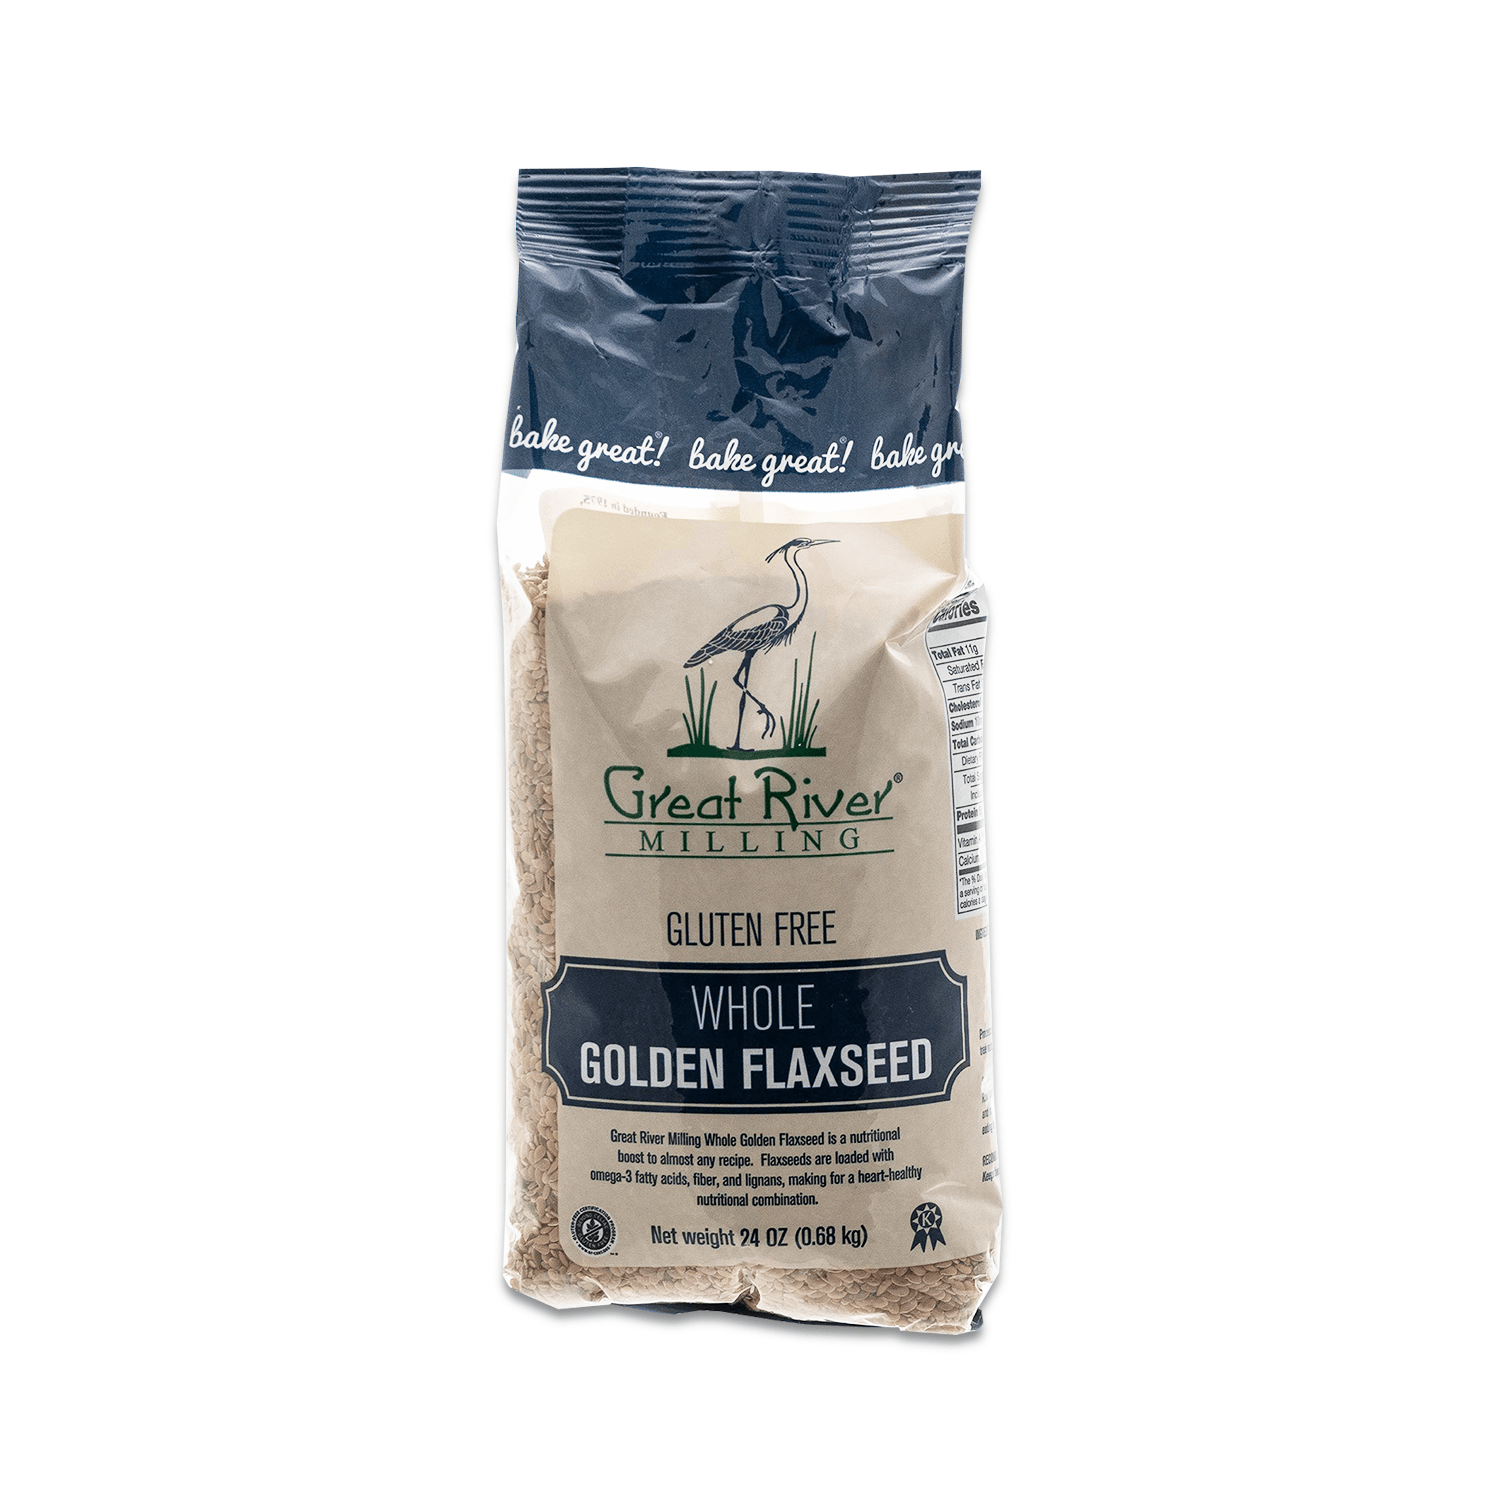 Great River Milling, GF, Whole Golden Flaxseed